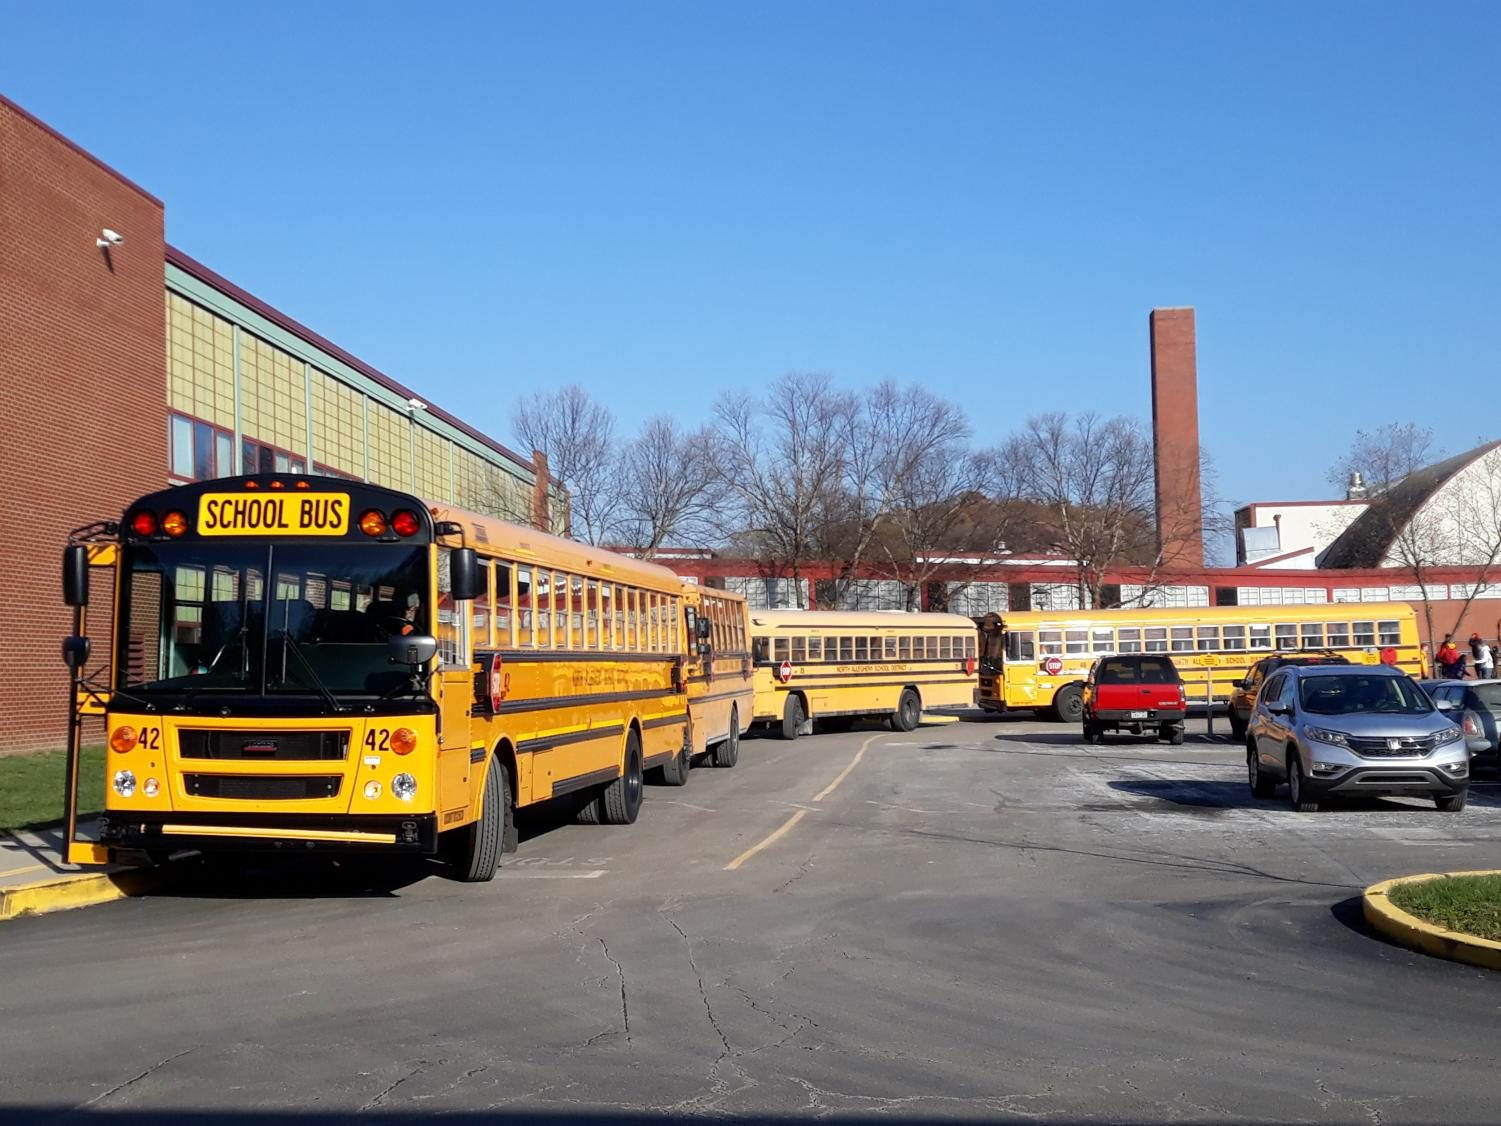 A+large+number+of+bus+drivers+is+required++for+the+sheer+number+of+school+buses+that+service+North+Allegheny+every+day.